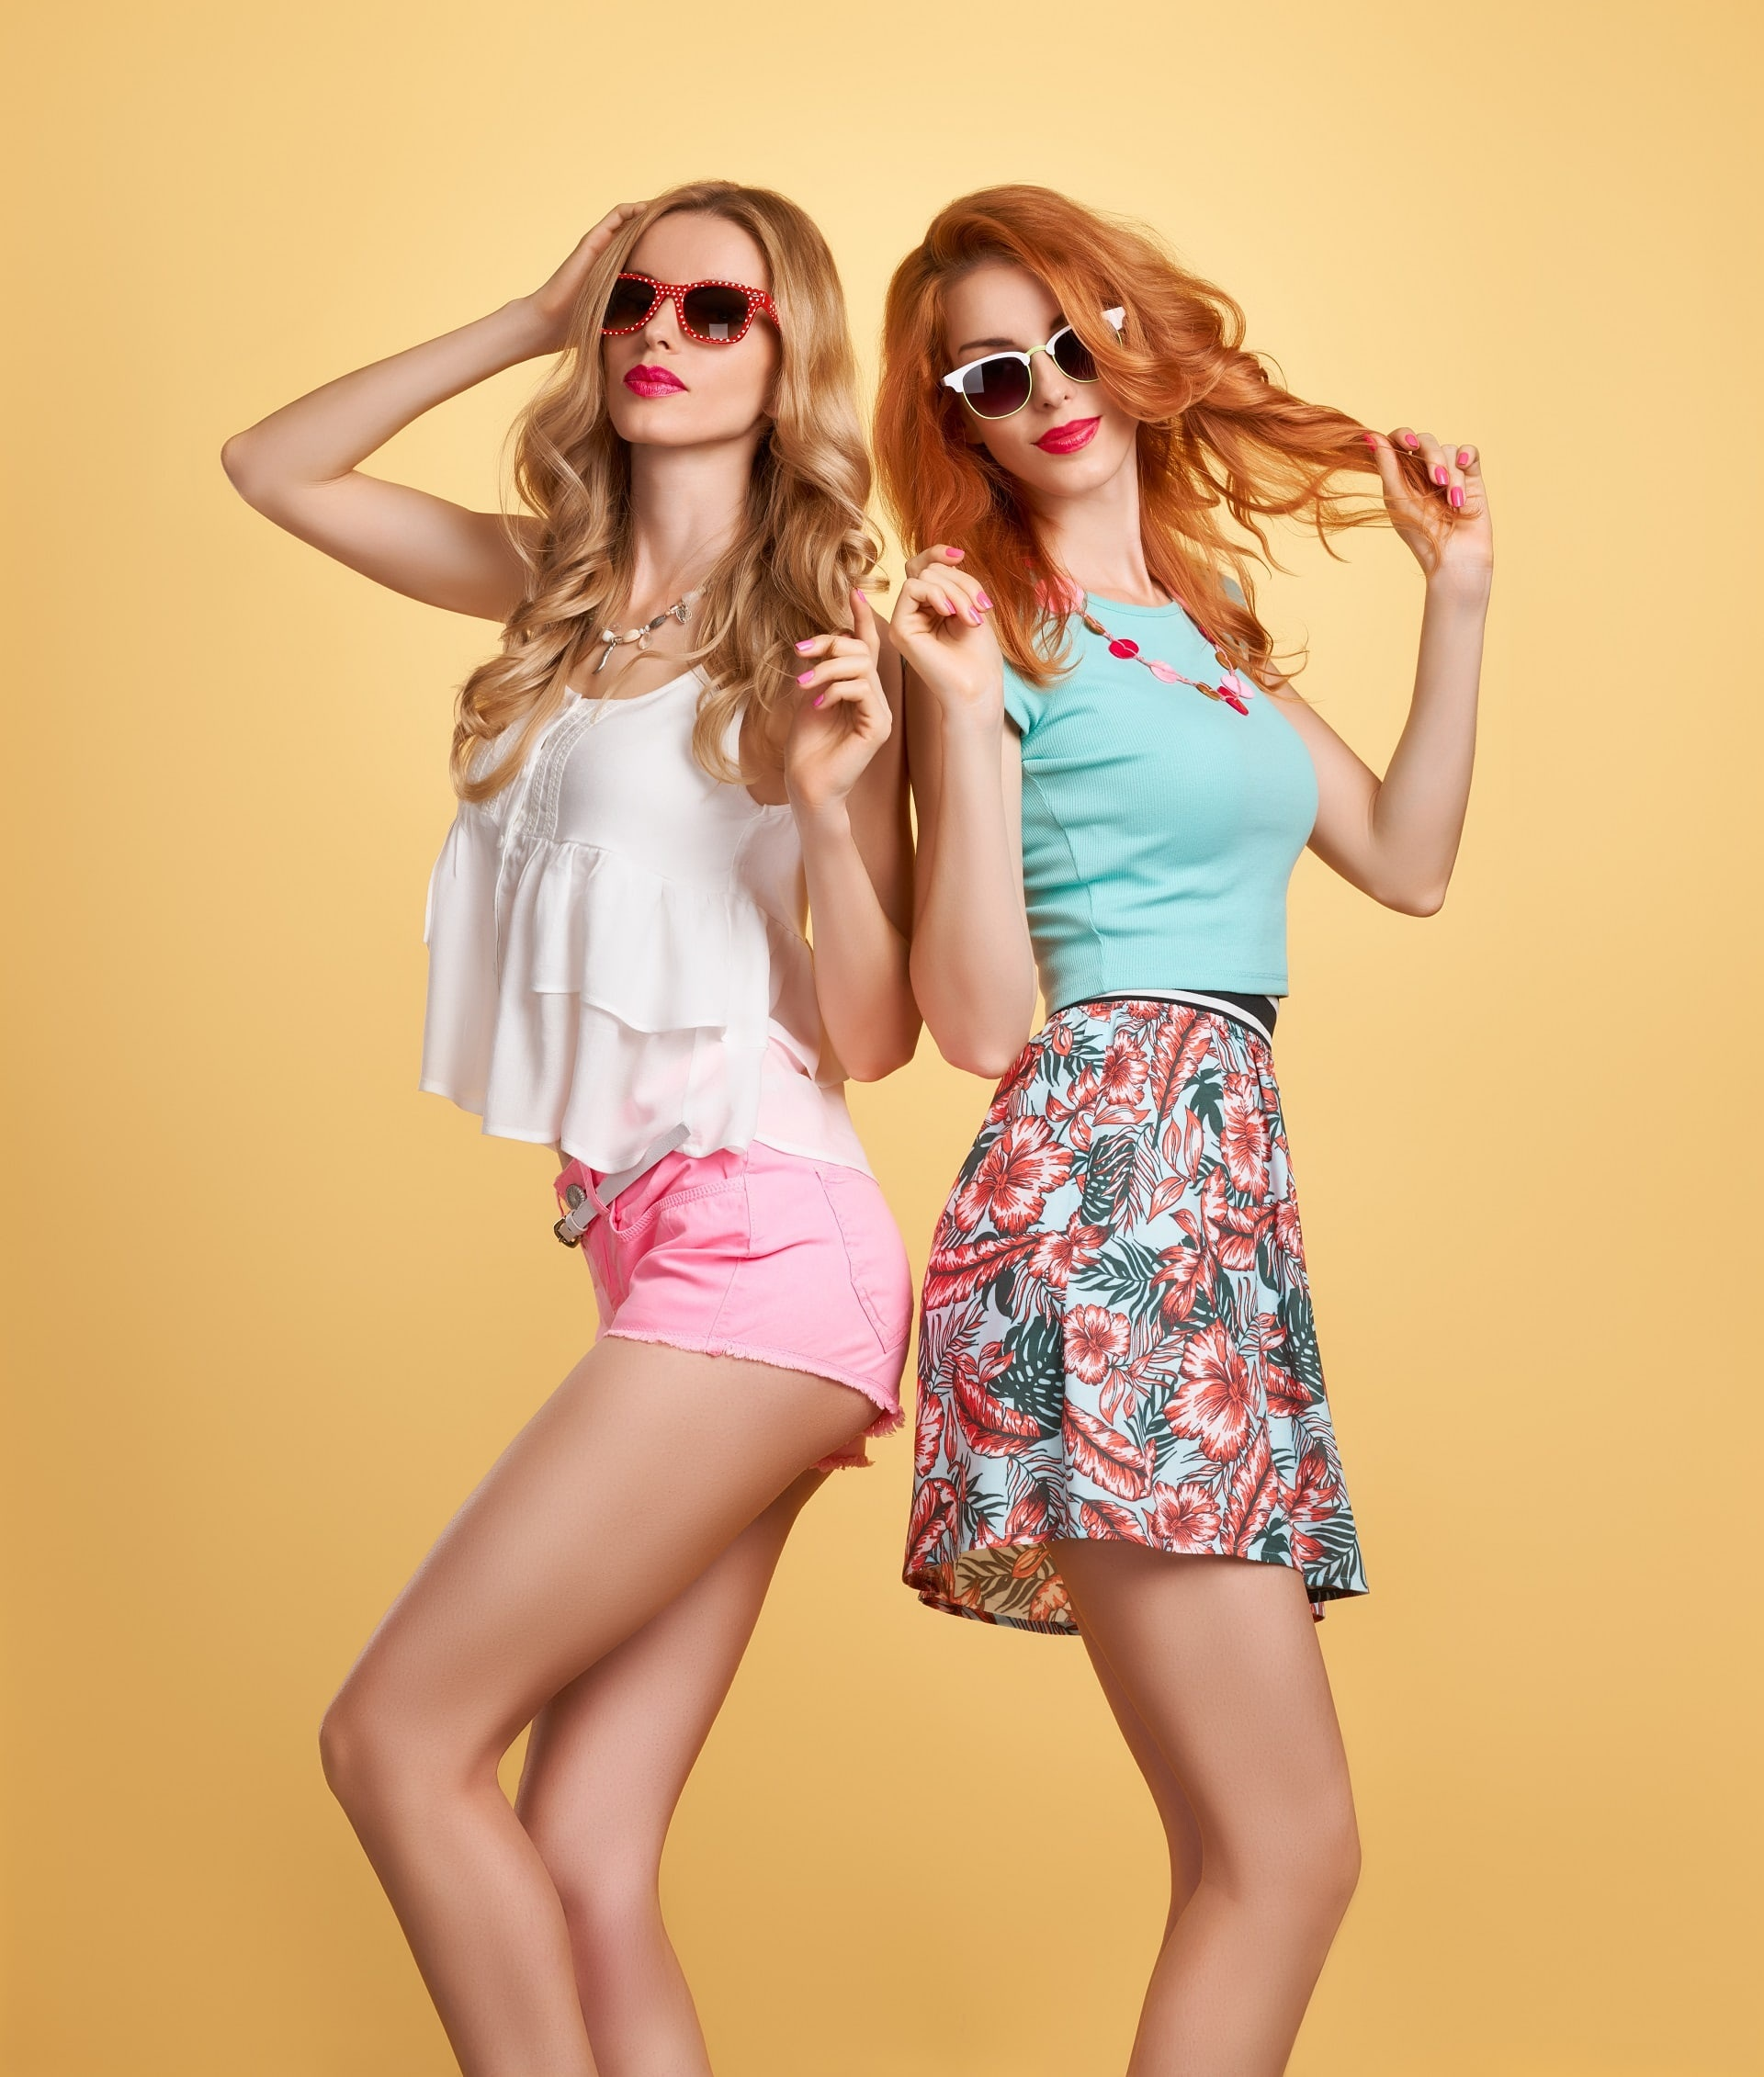 Two models with a summer outfits